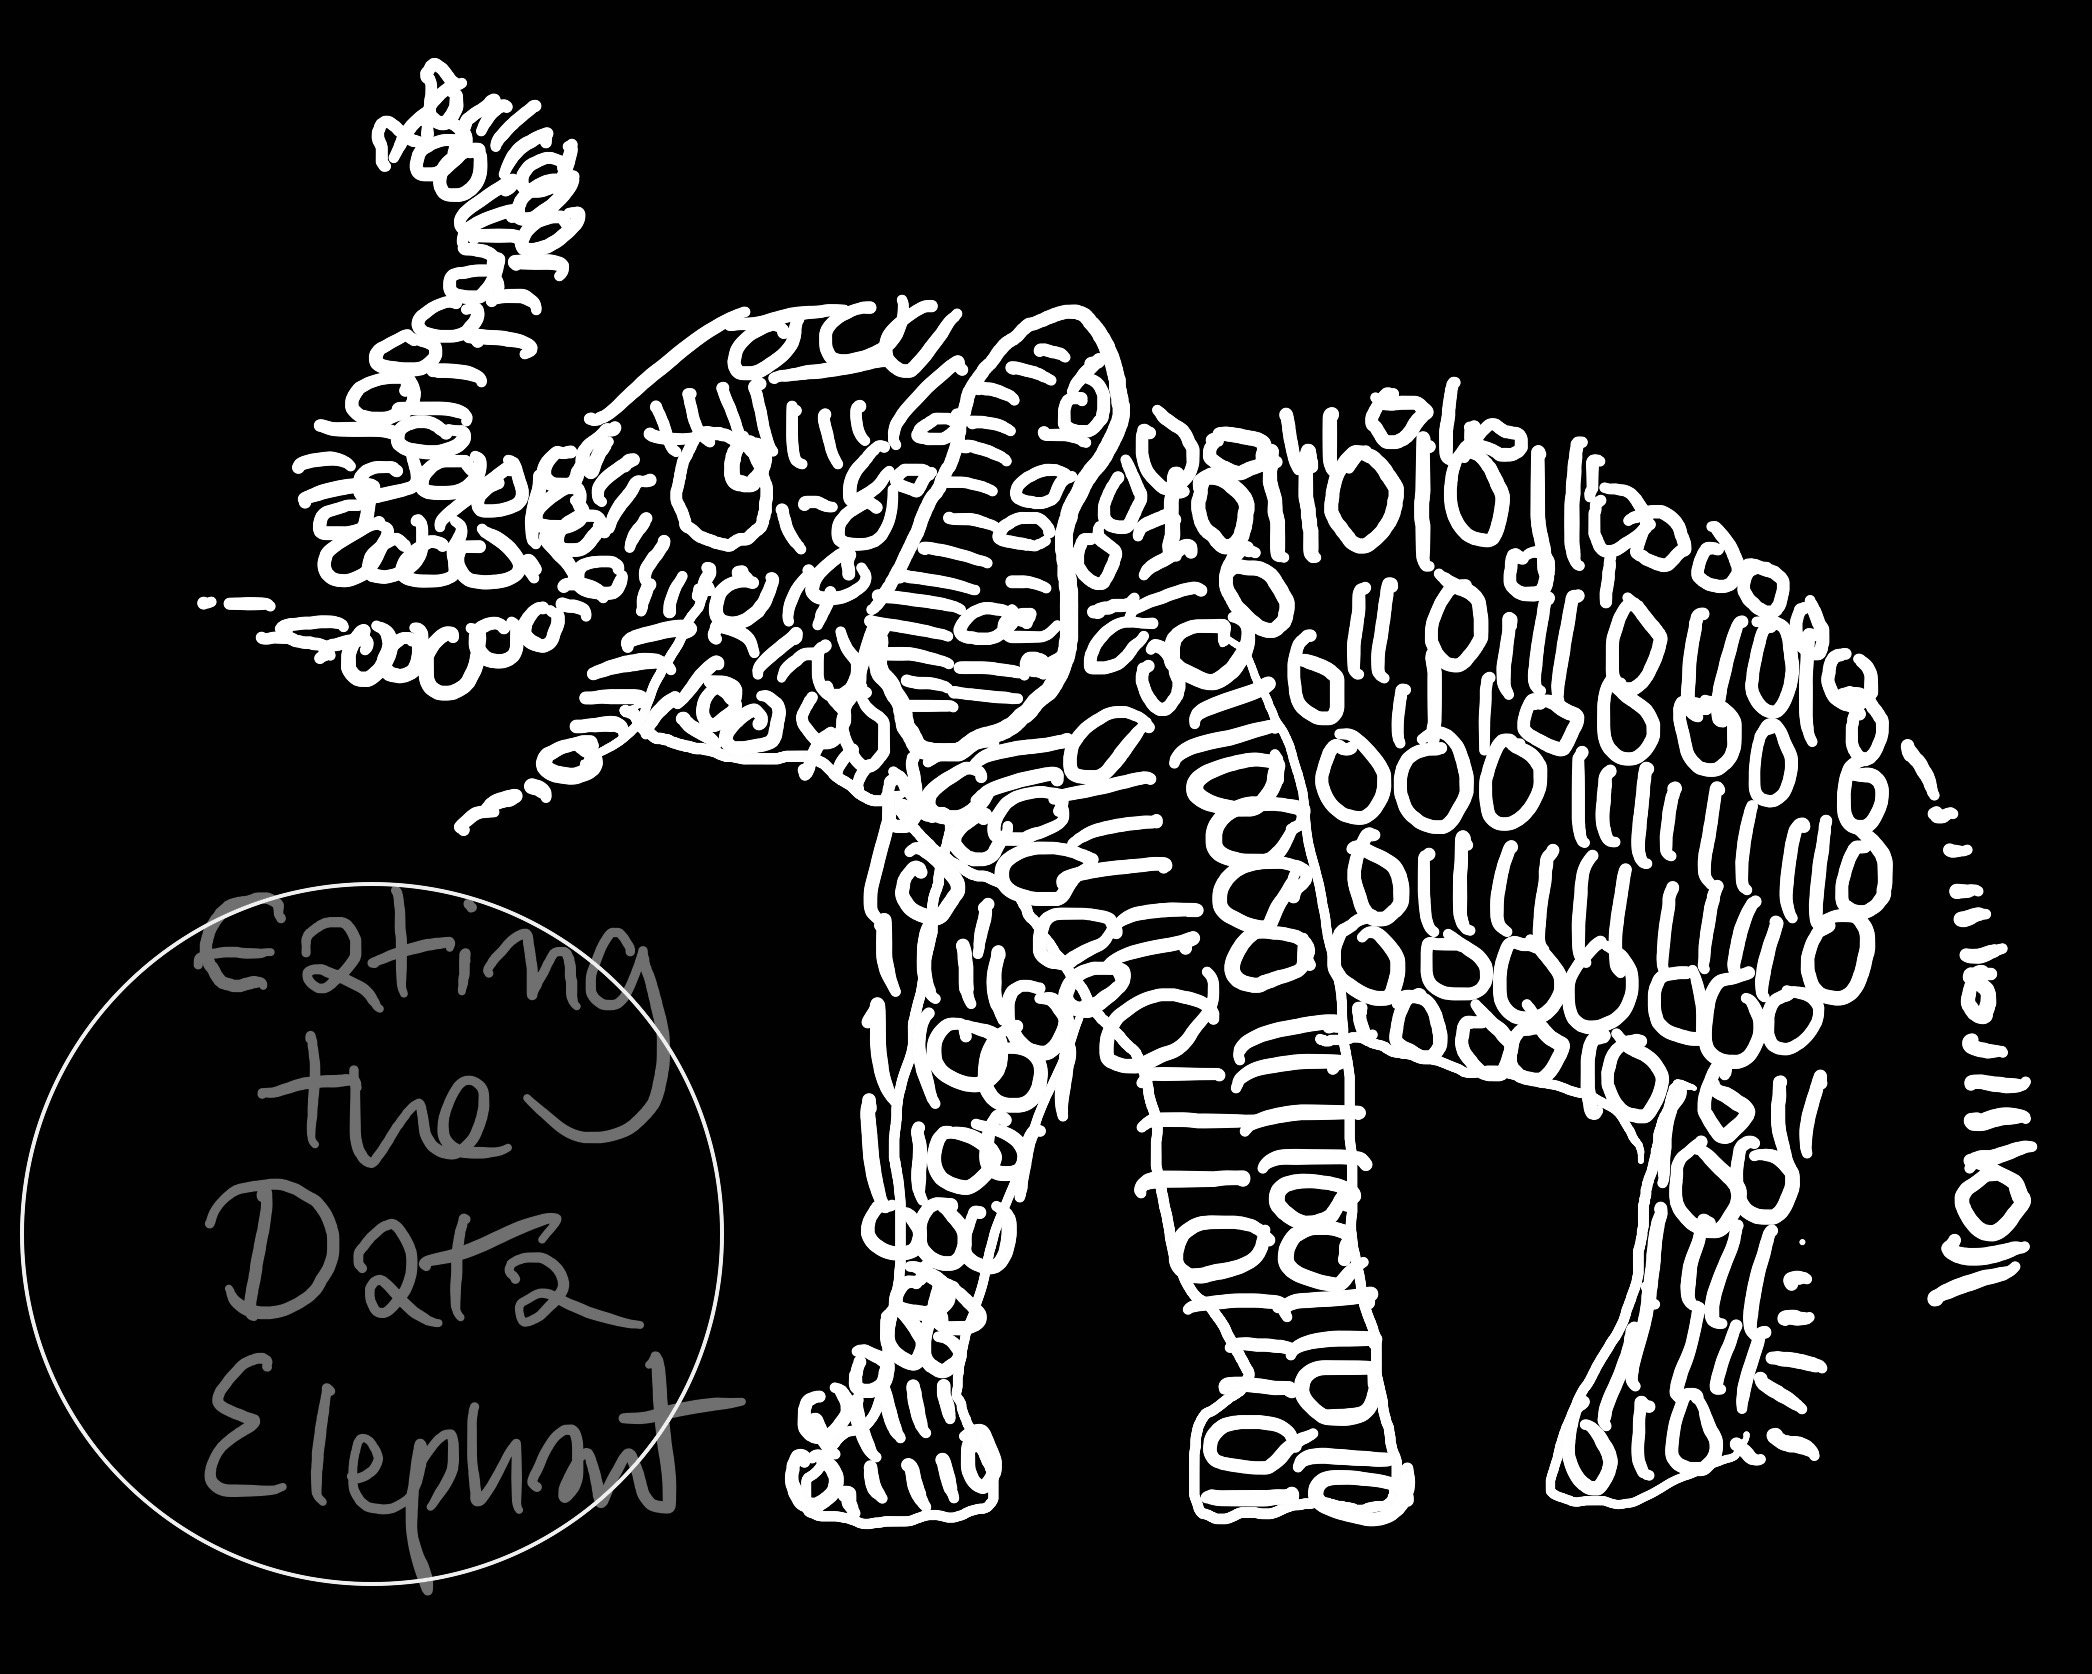 How to Eat the Data Elephant? Cut it into Bytes!